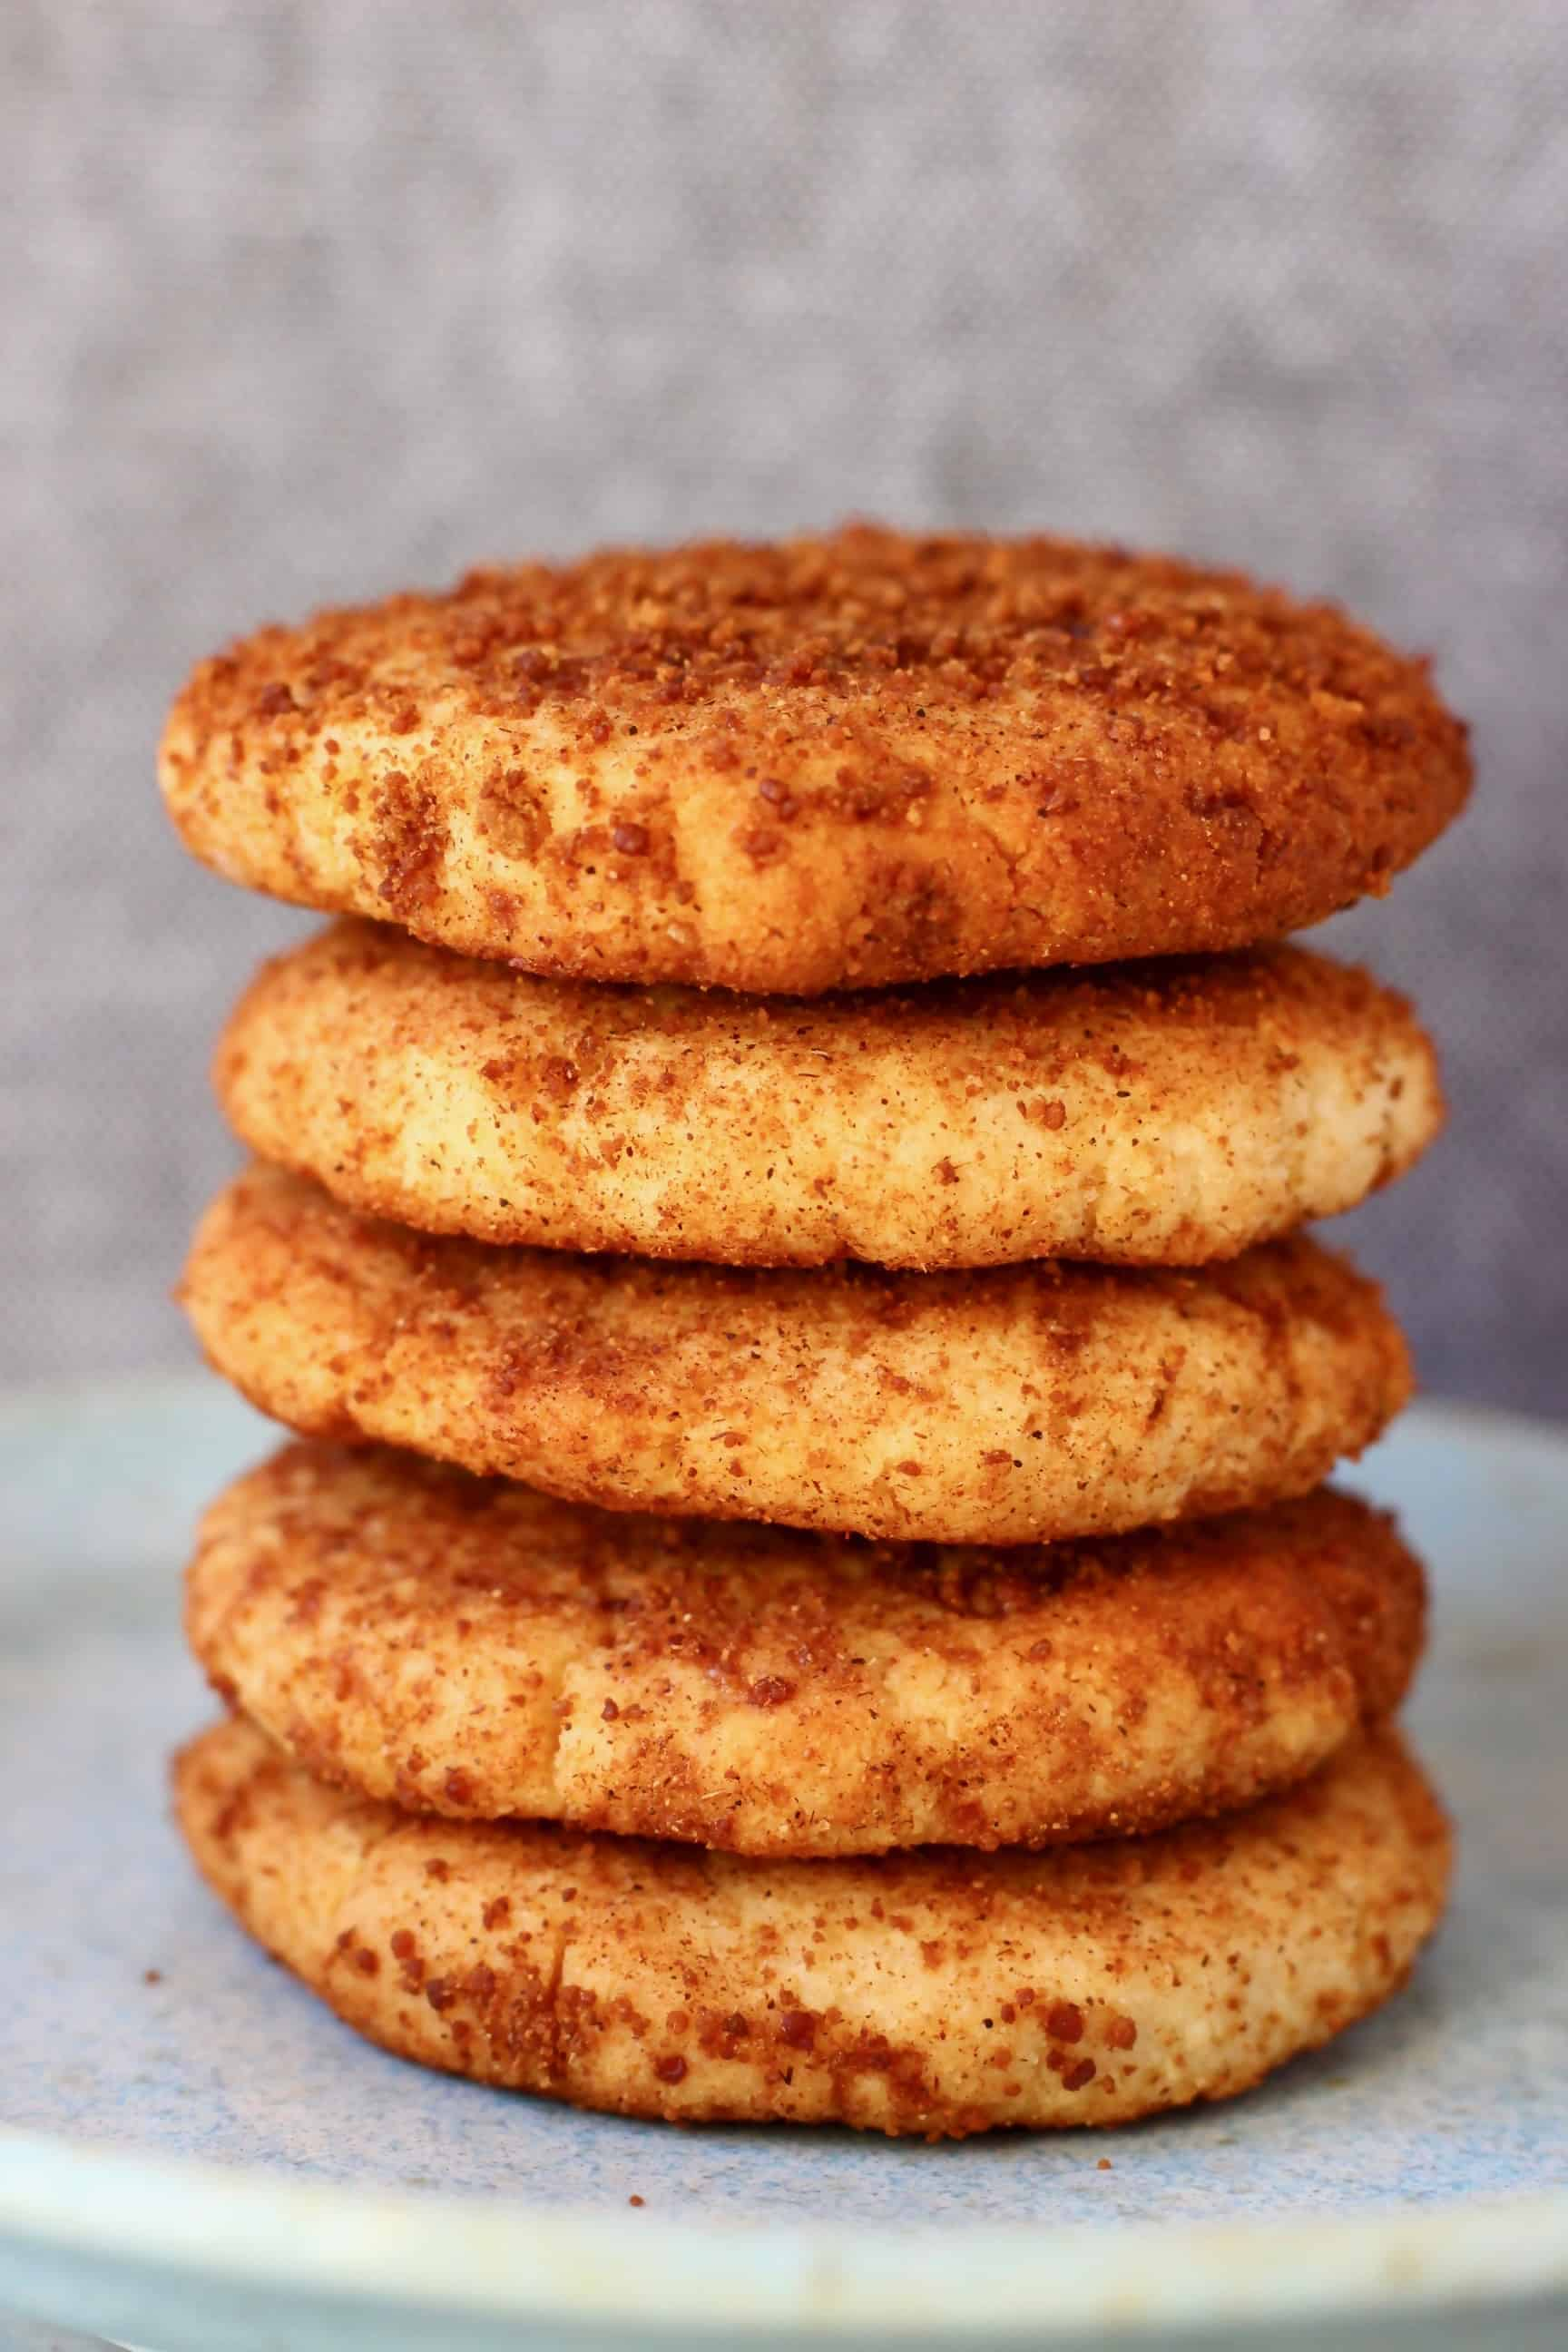 Five cookies coated in brown cinnamon sugar stacked on top of each other on a light blue plate against a grey background